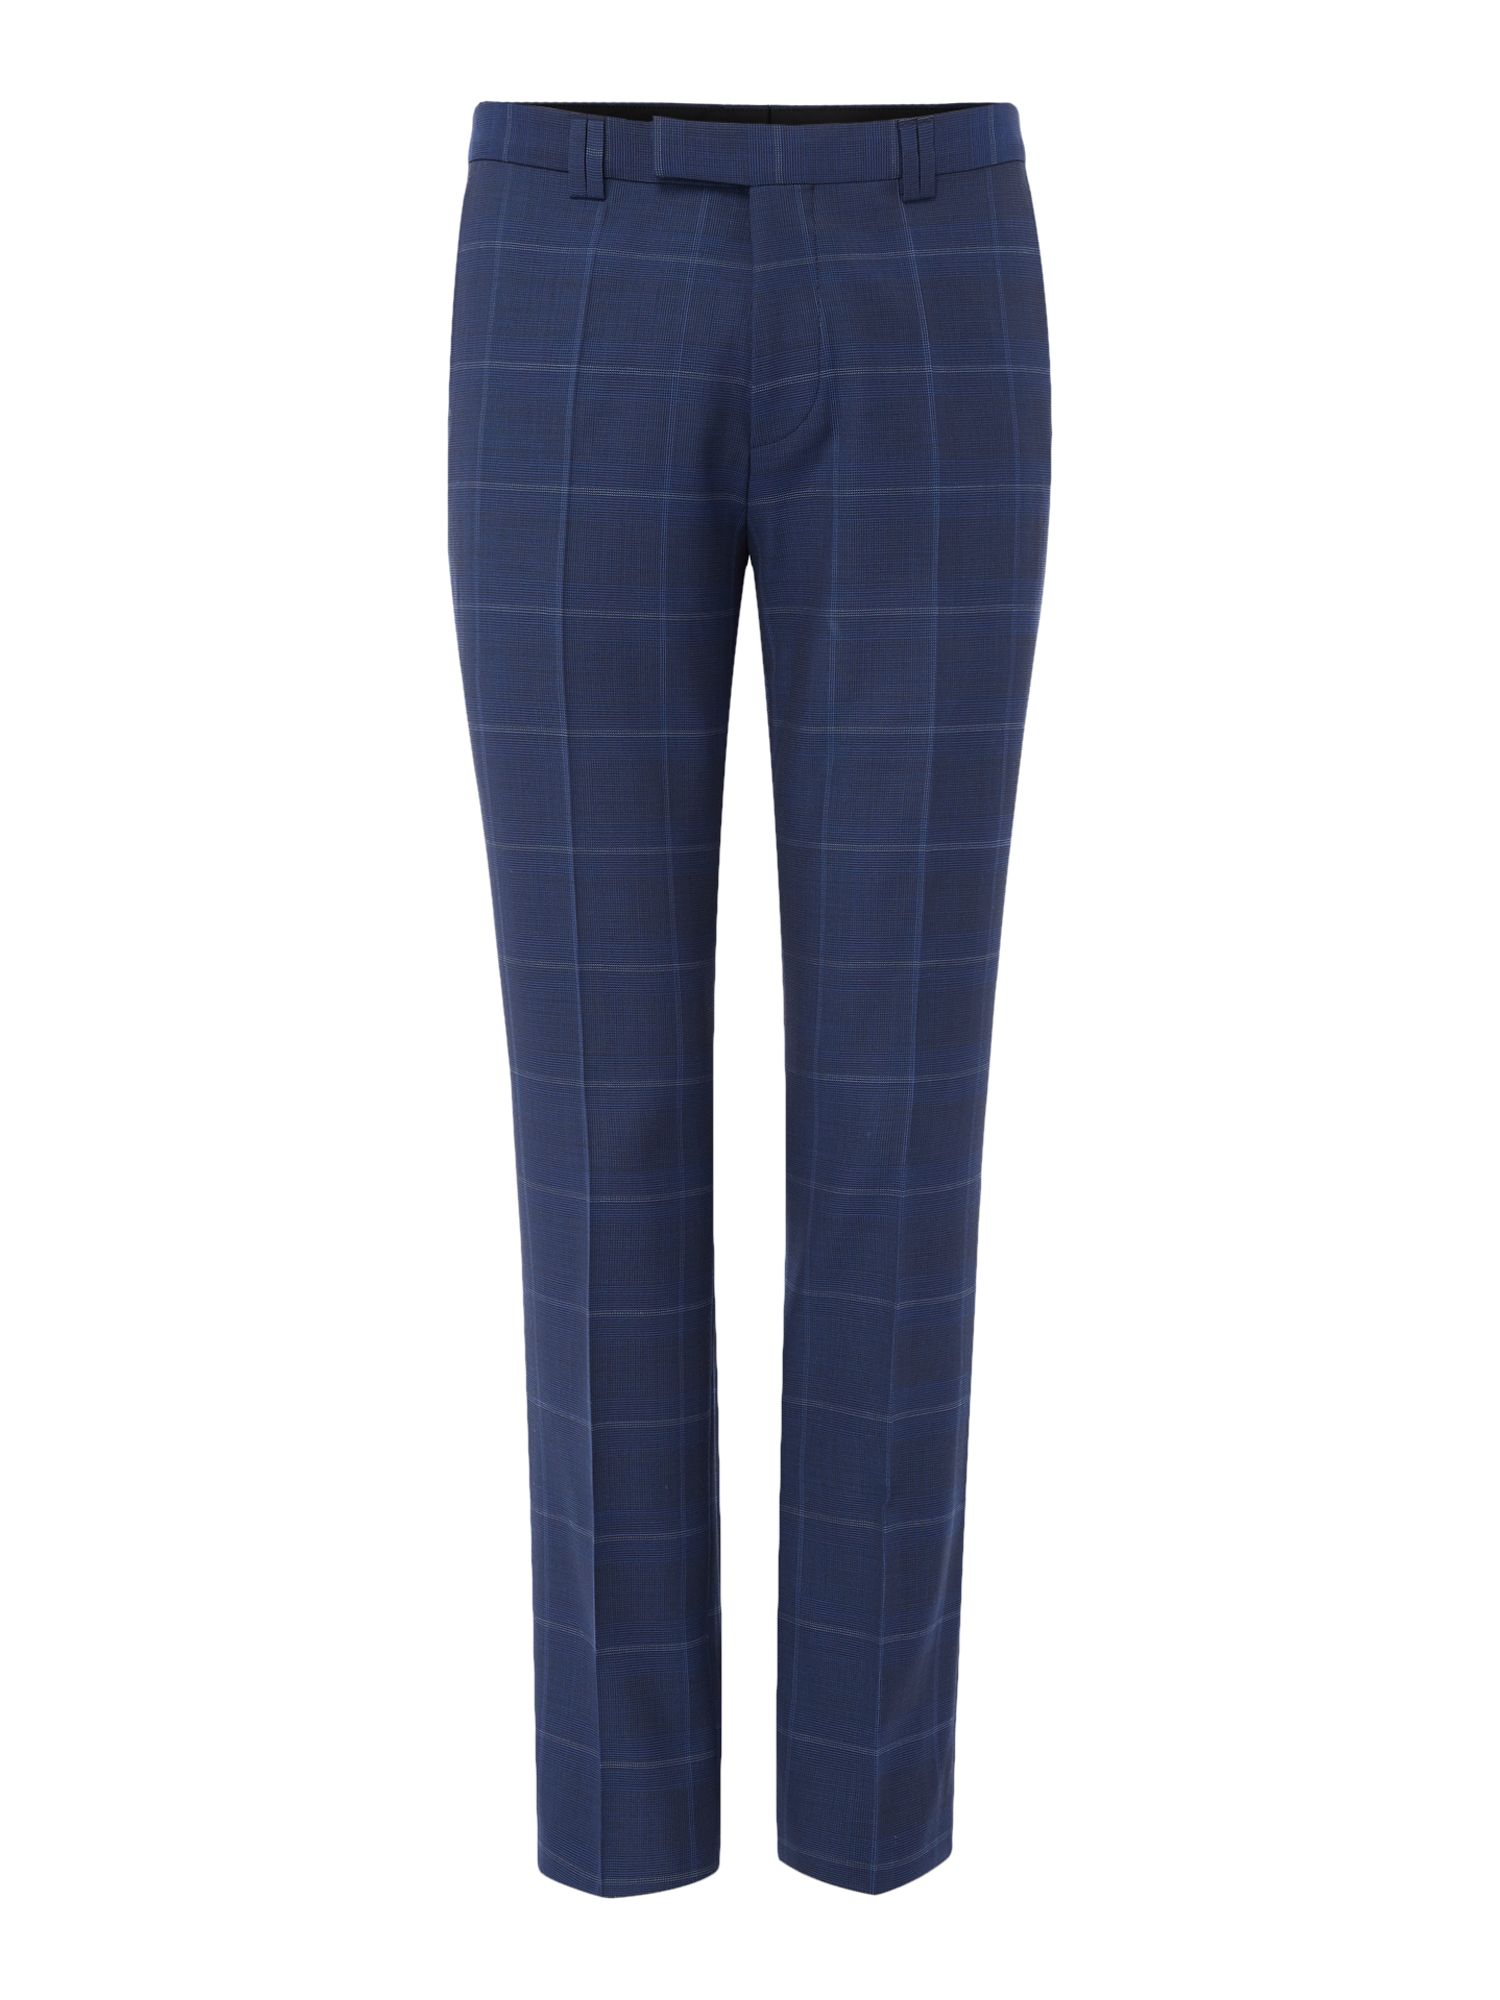 HUGO Men's Hugo Helum Windowpane Check Suit Trousers, Navy